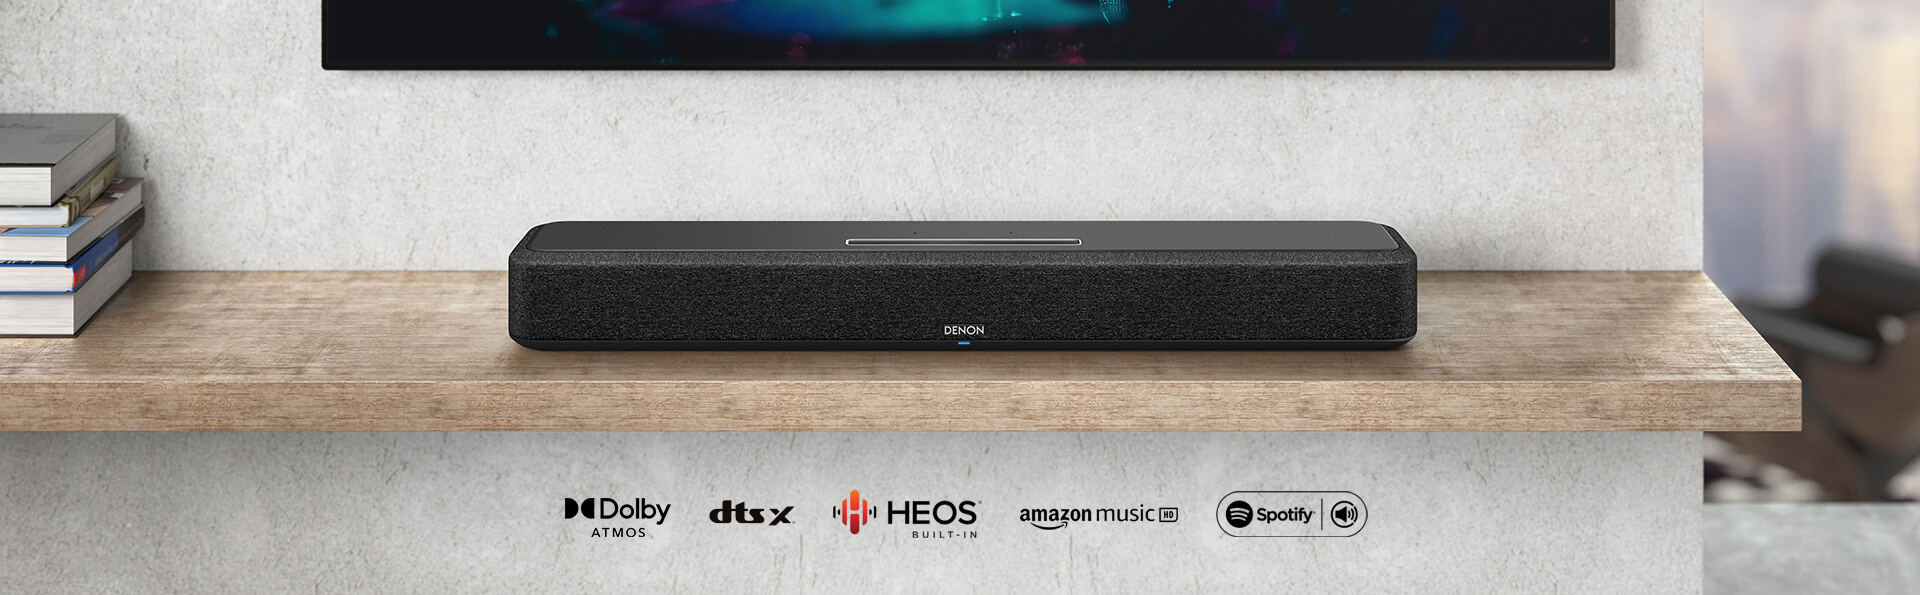 Denon Home Bar 550 WiFi soundbar